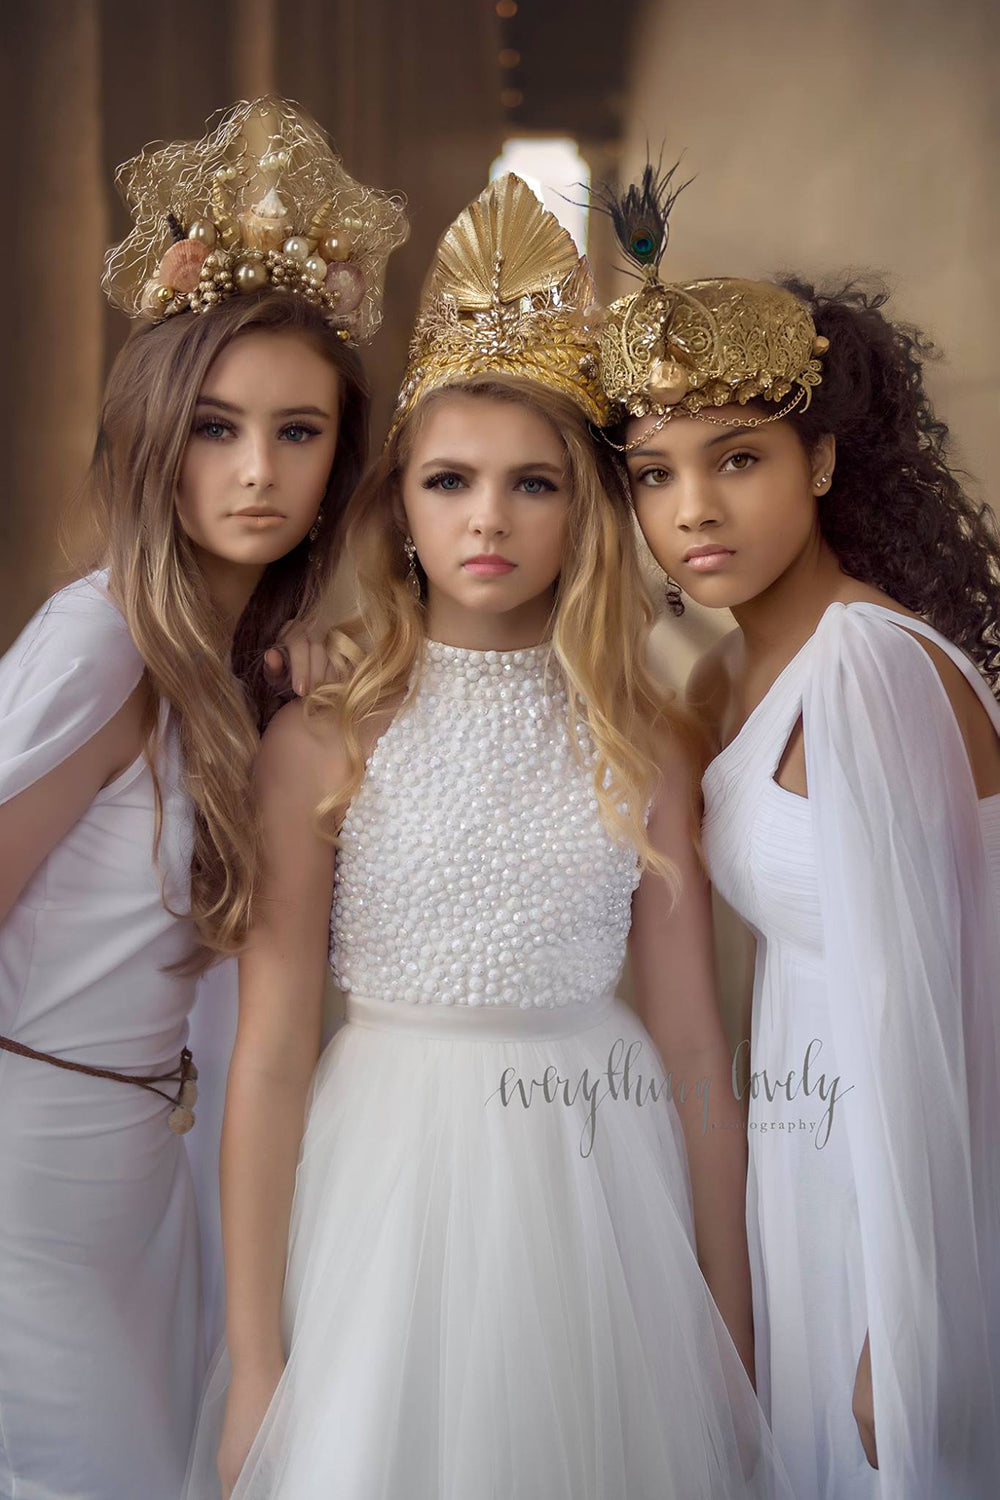 Hera Greek Goddess Marriage Queen Couture Headpiece - Honeydrops Designs